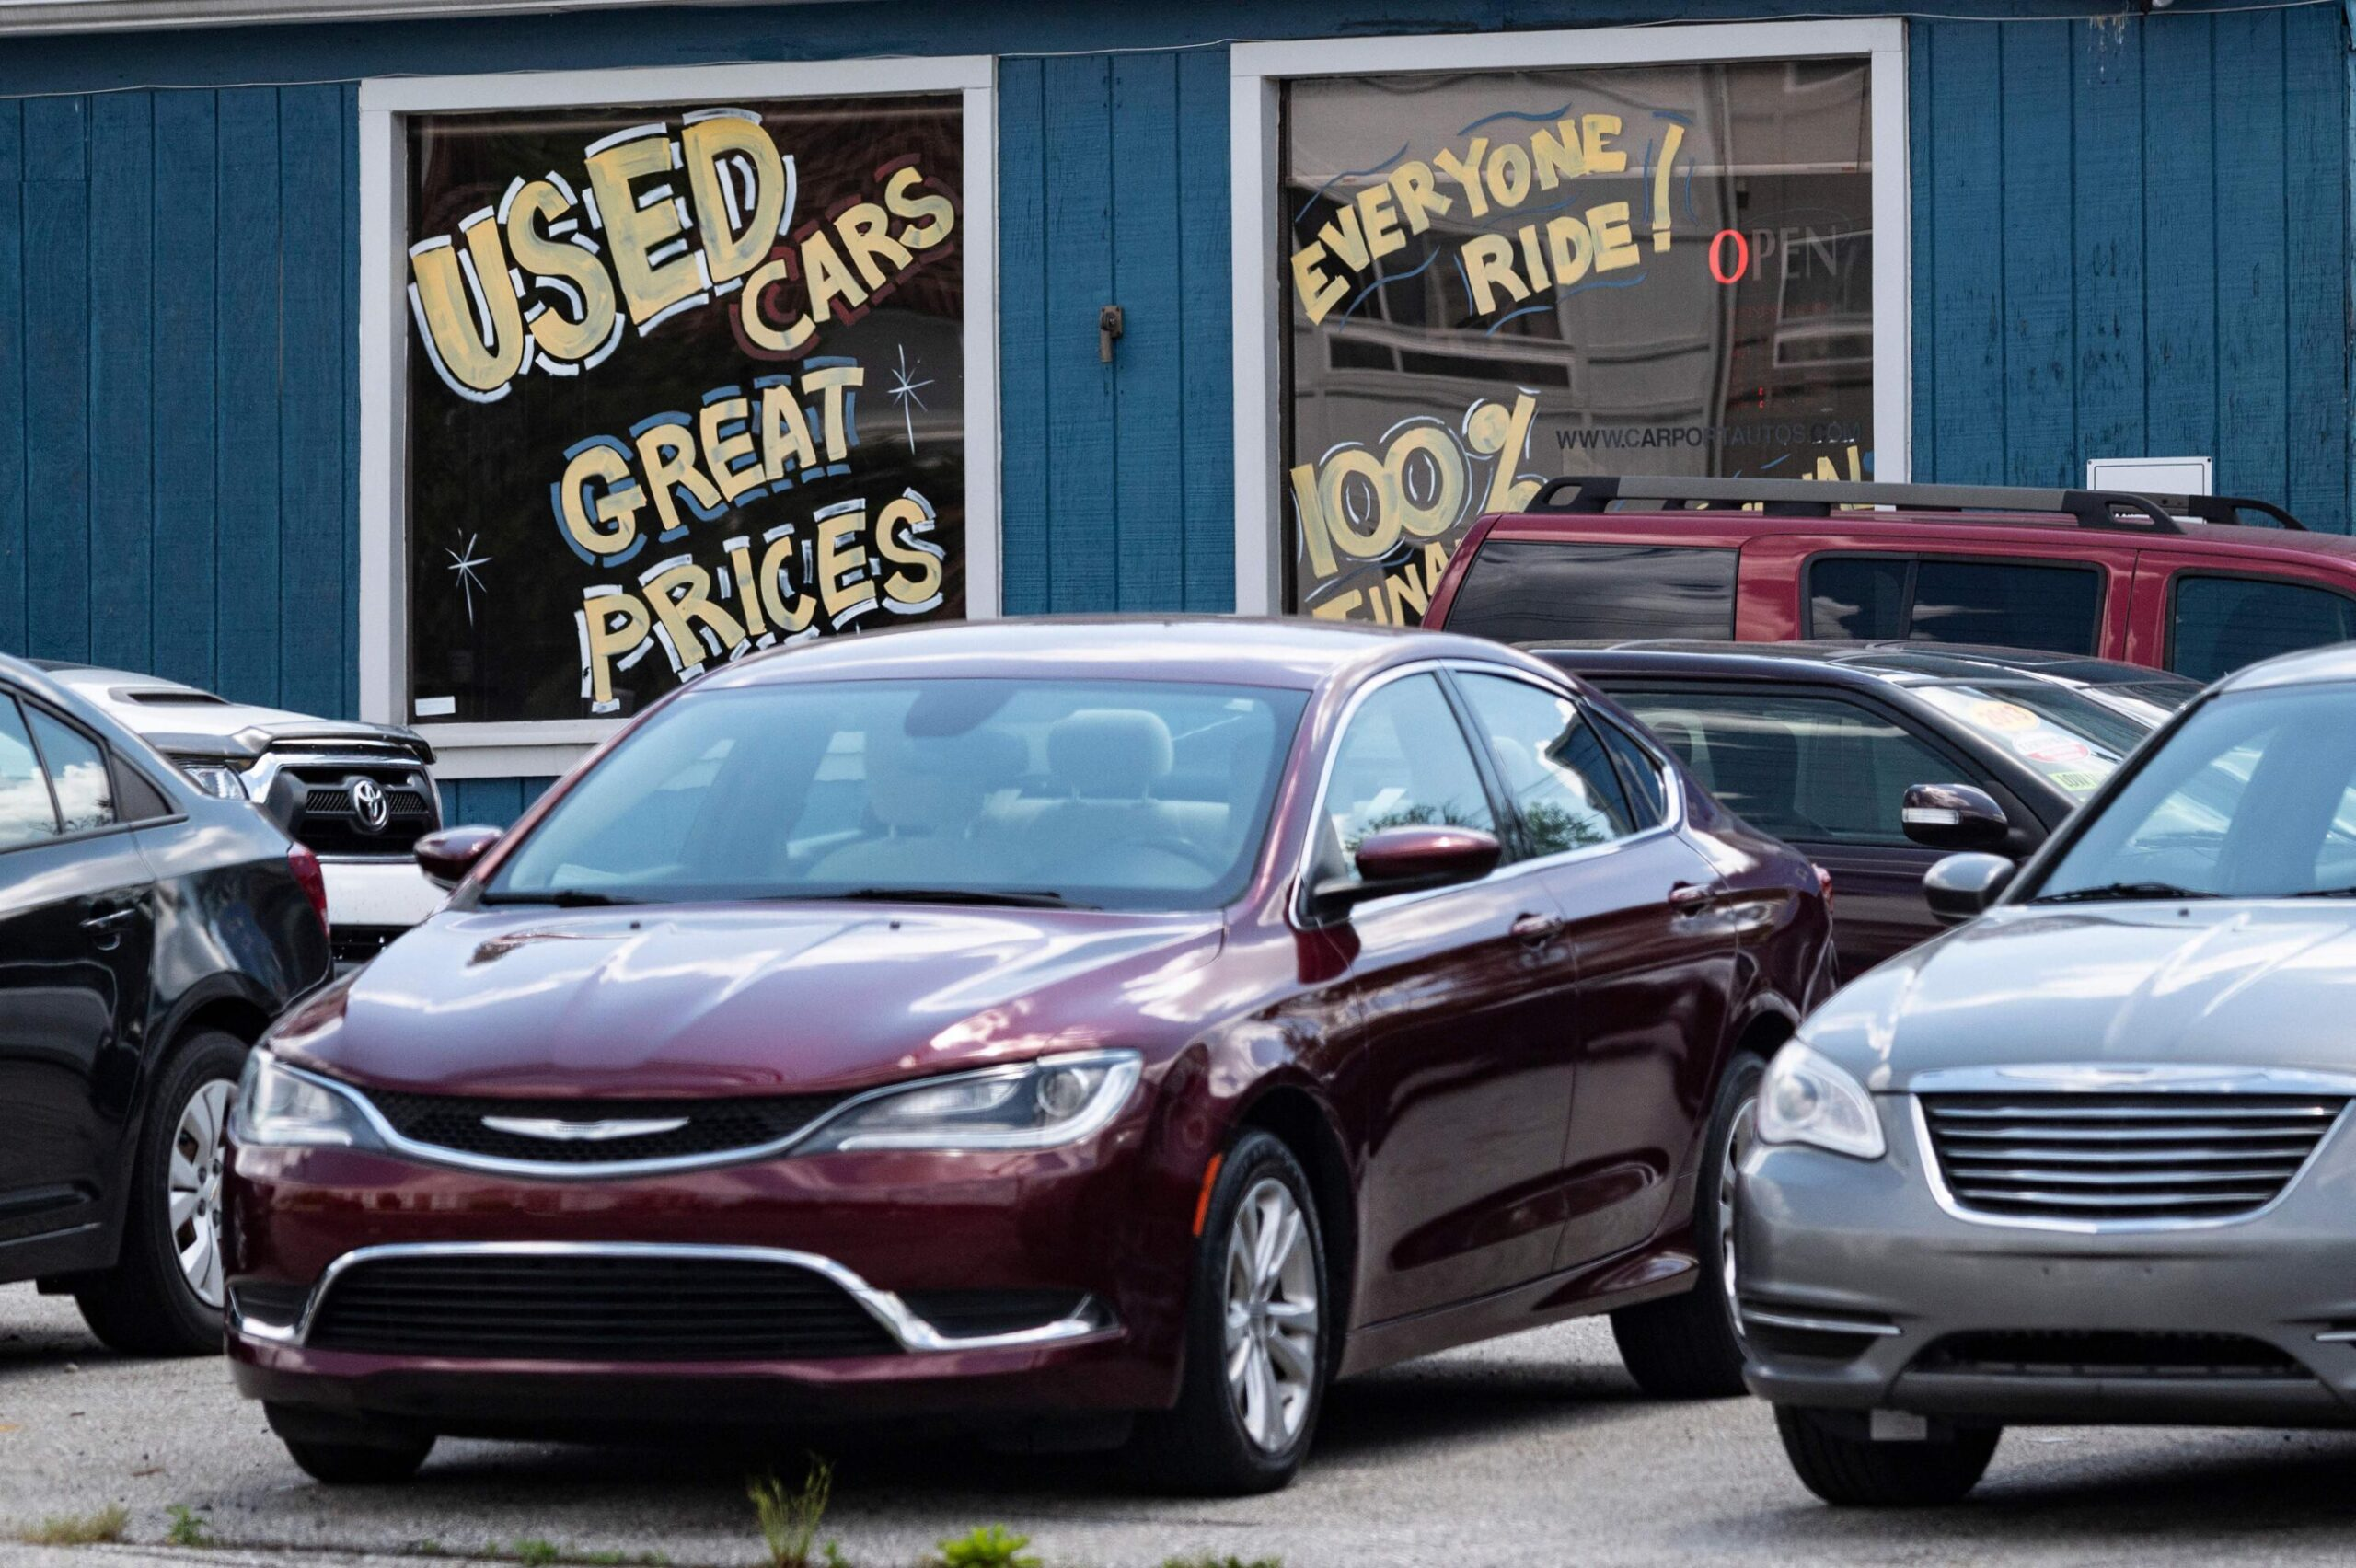 <i>Jim Watson/AFP/Getty Images</i><br/>A used car dealership is seen in Laurel